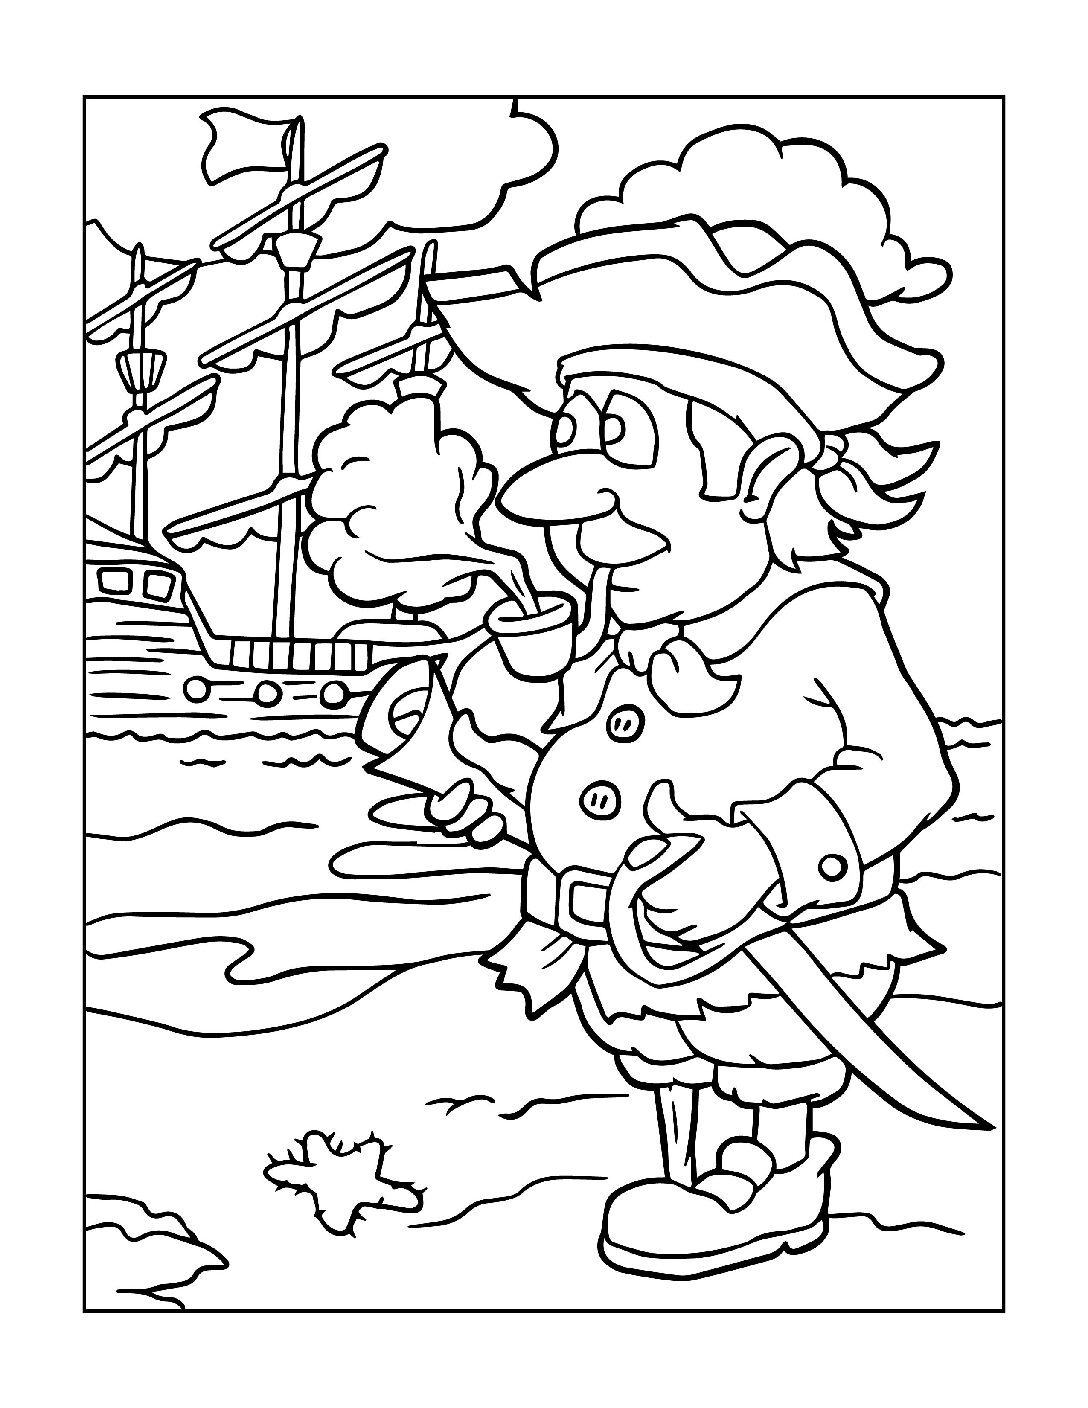 Coloring-Pages-Pirates-and-Knights-for-Boys-11-01-pdf Free Printable Pirates &  Knights Colouring Pages